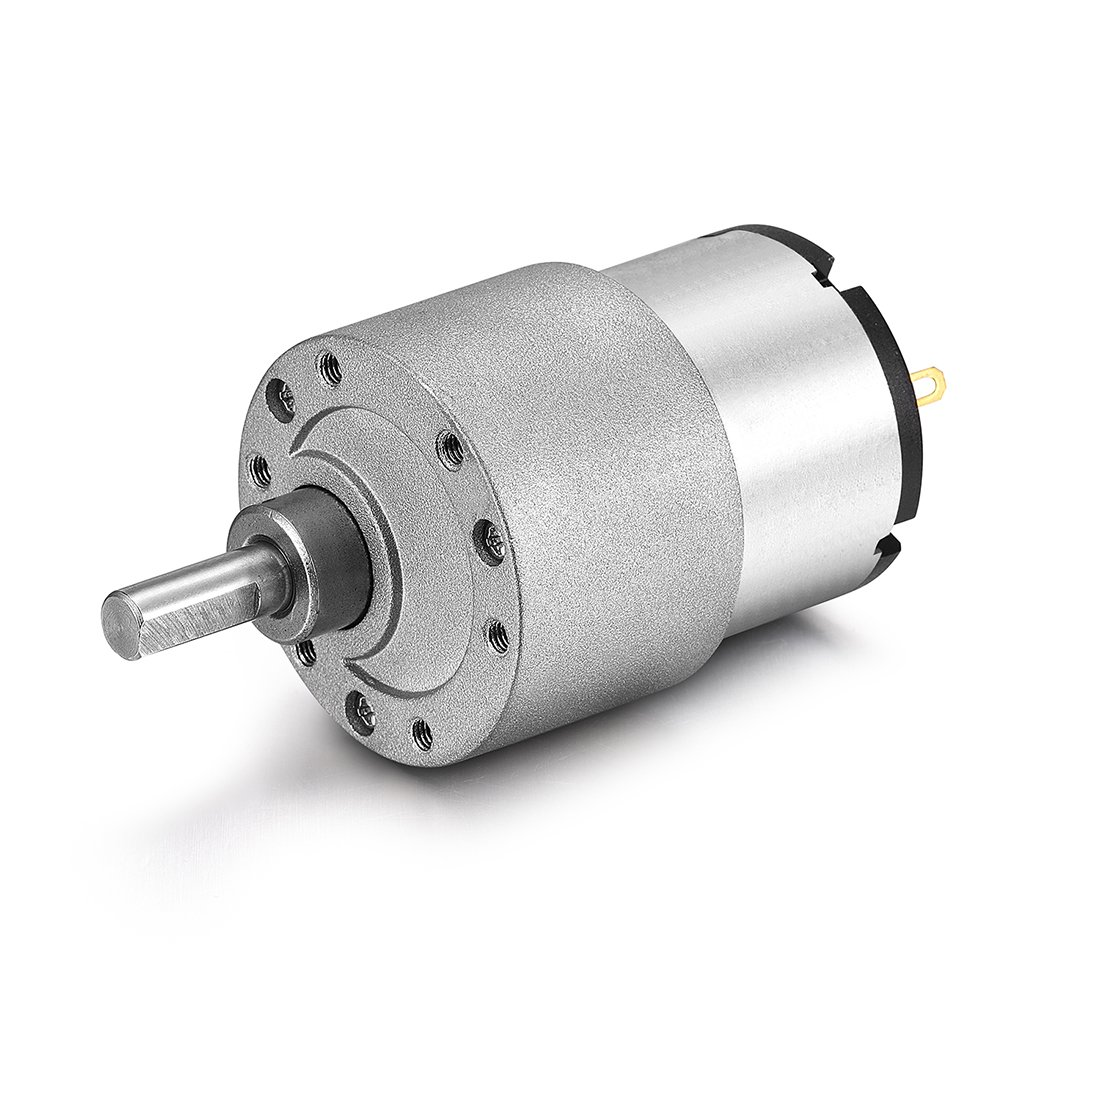 Sourcingmap Mini 6V DC 16 RPM 49N.cm High Torque Gear Box Electric Motor US-SA-AJD-356573